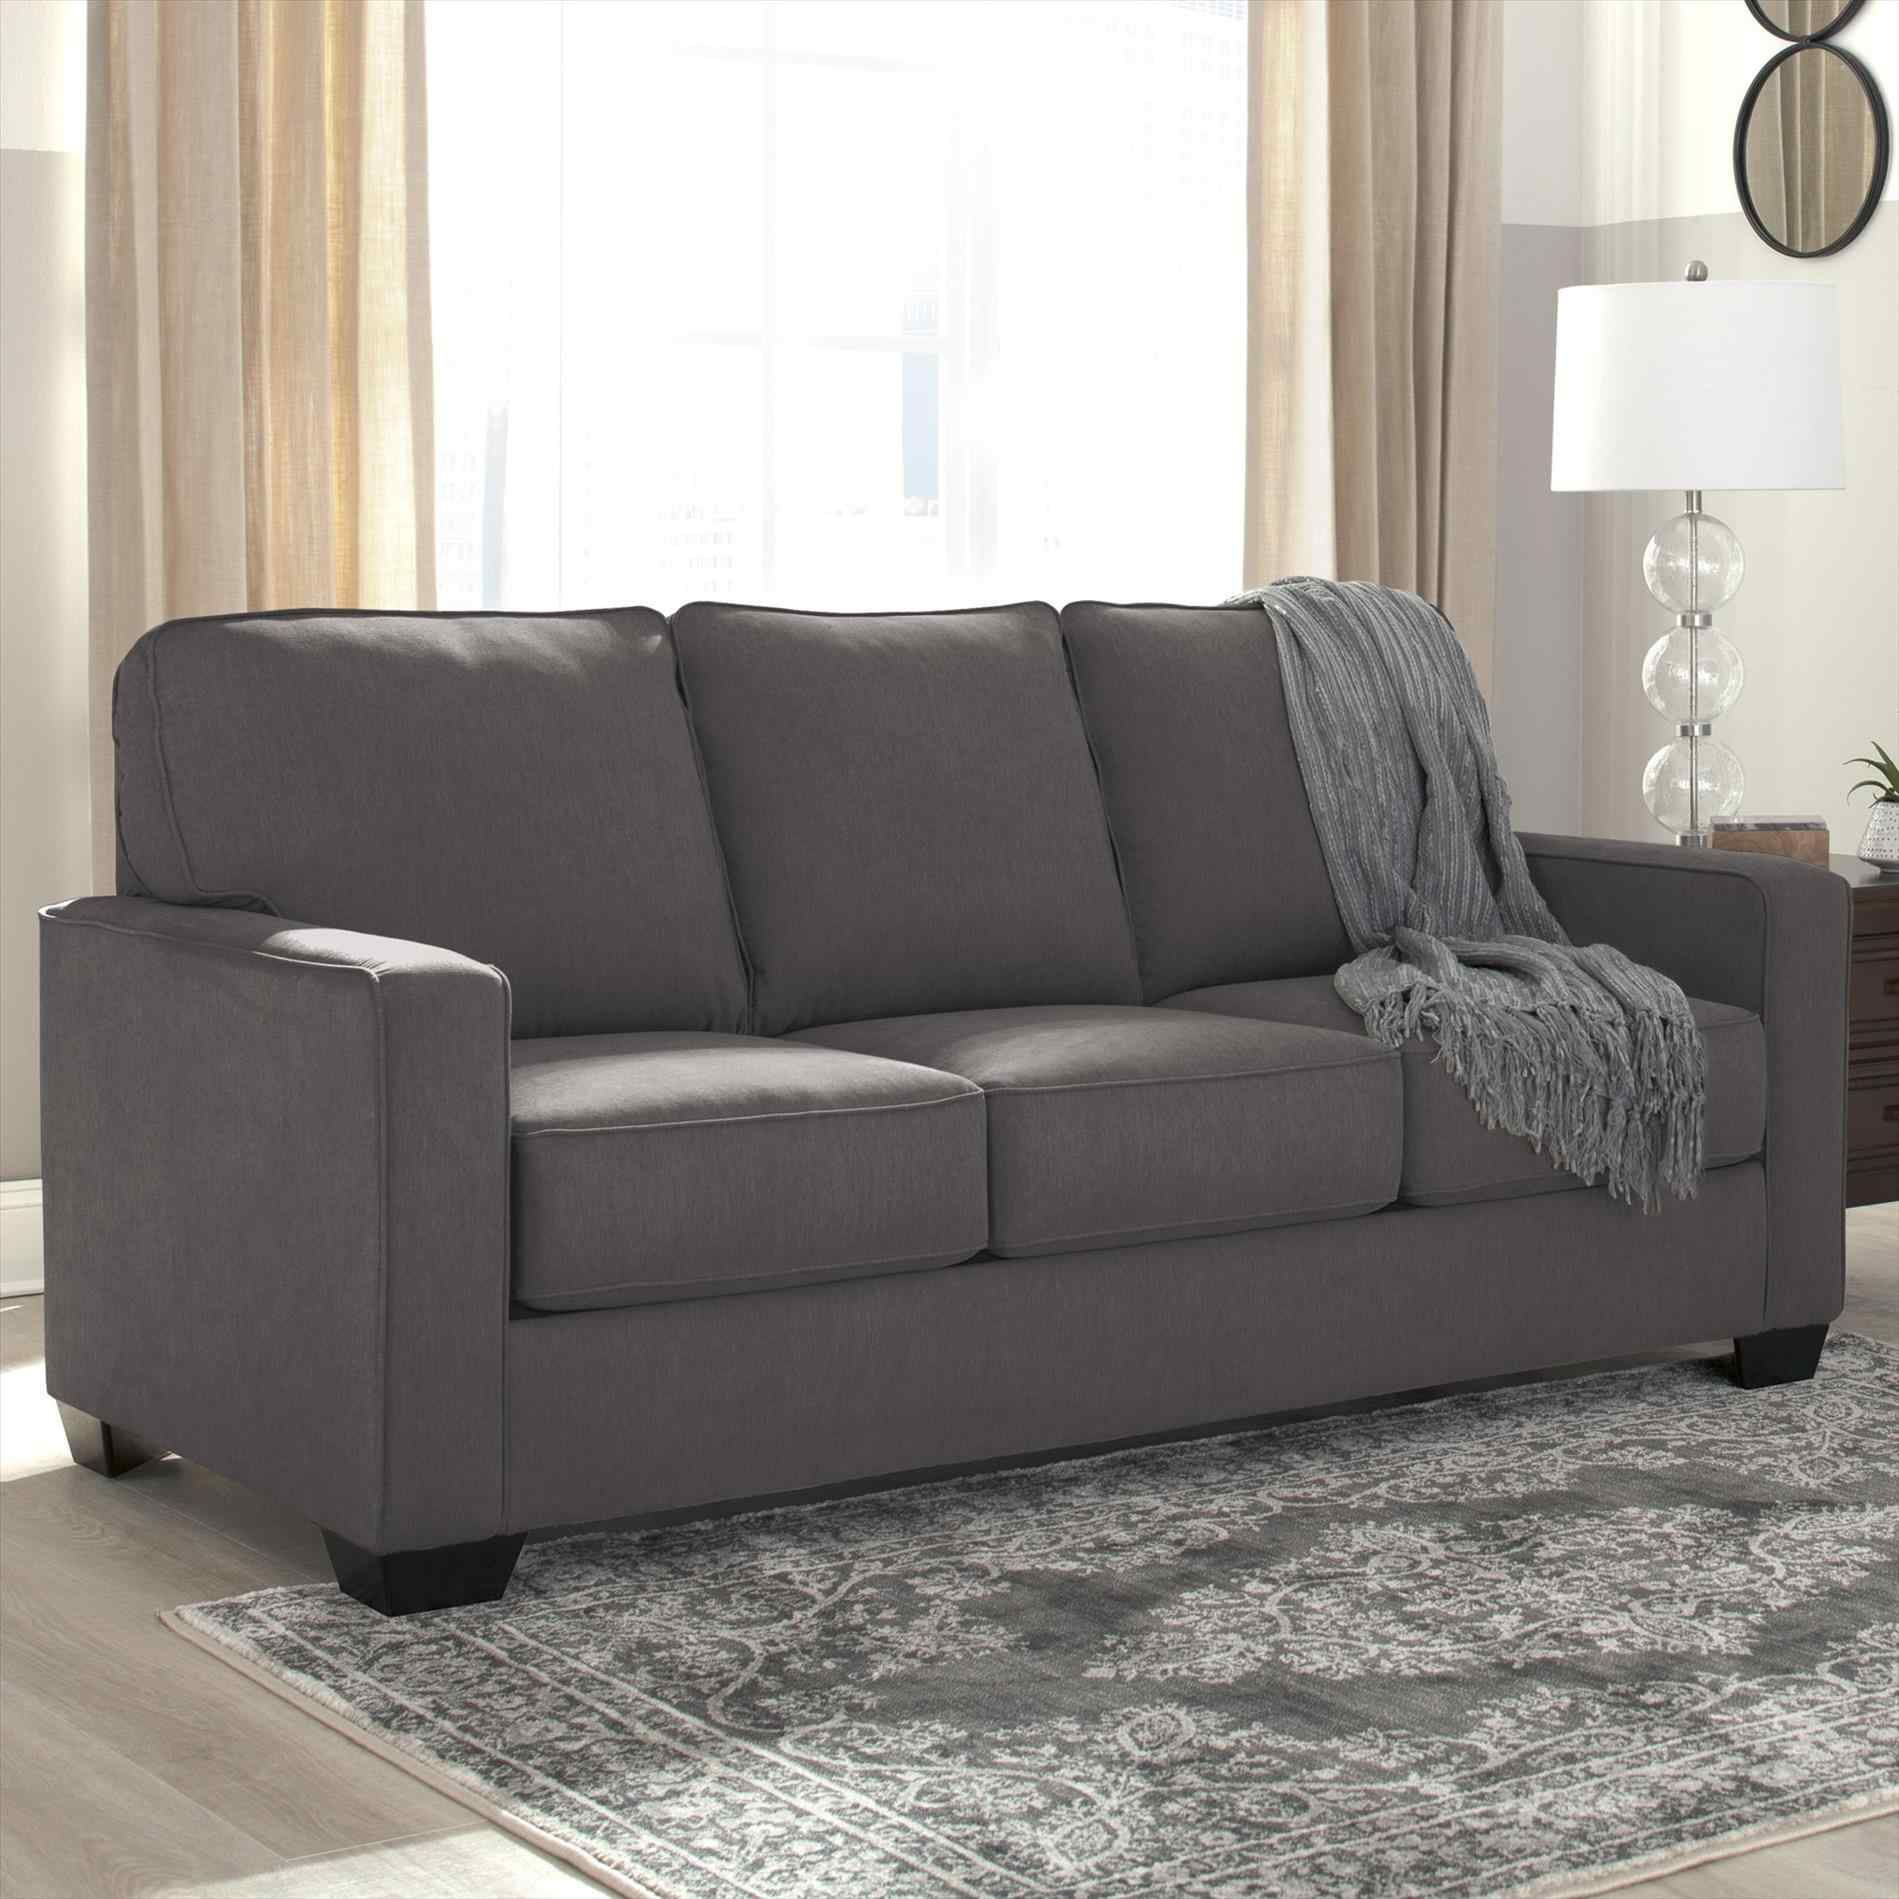 Beds Ikea Apartment Sleeper Sofa 60 Inches Wide Sized S That Are Lifesavers  Hgtvus Decorating Loveseat Sleeper Sofa 60 Inches Wide Sectional